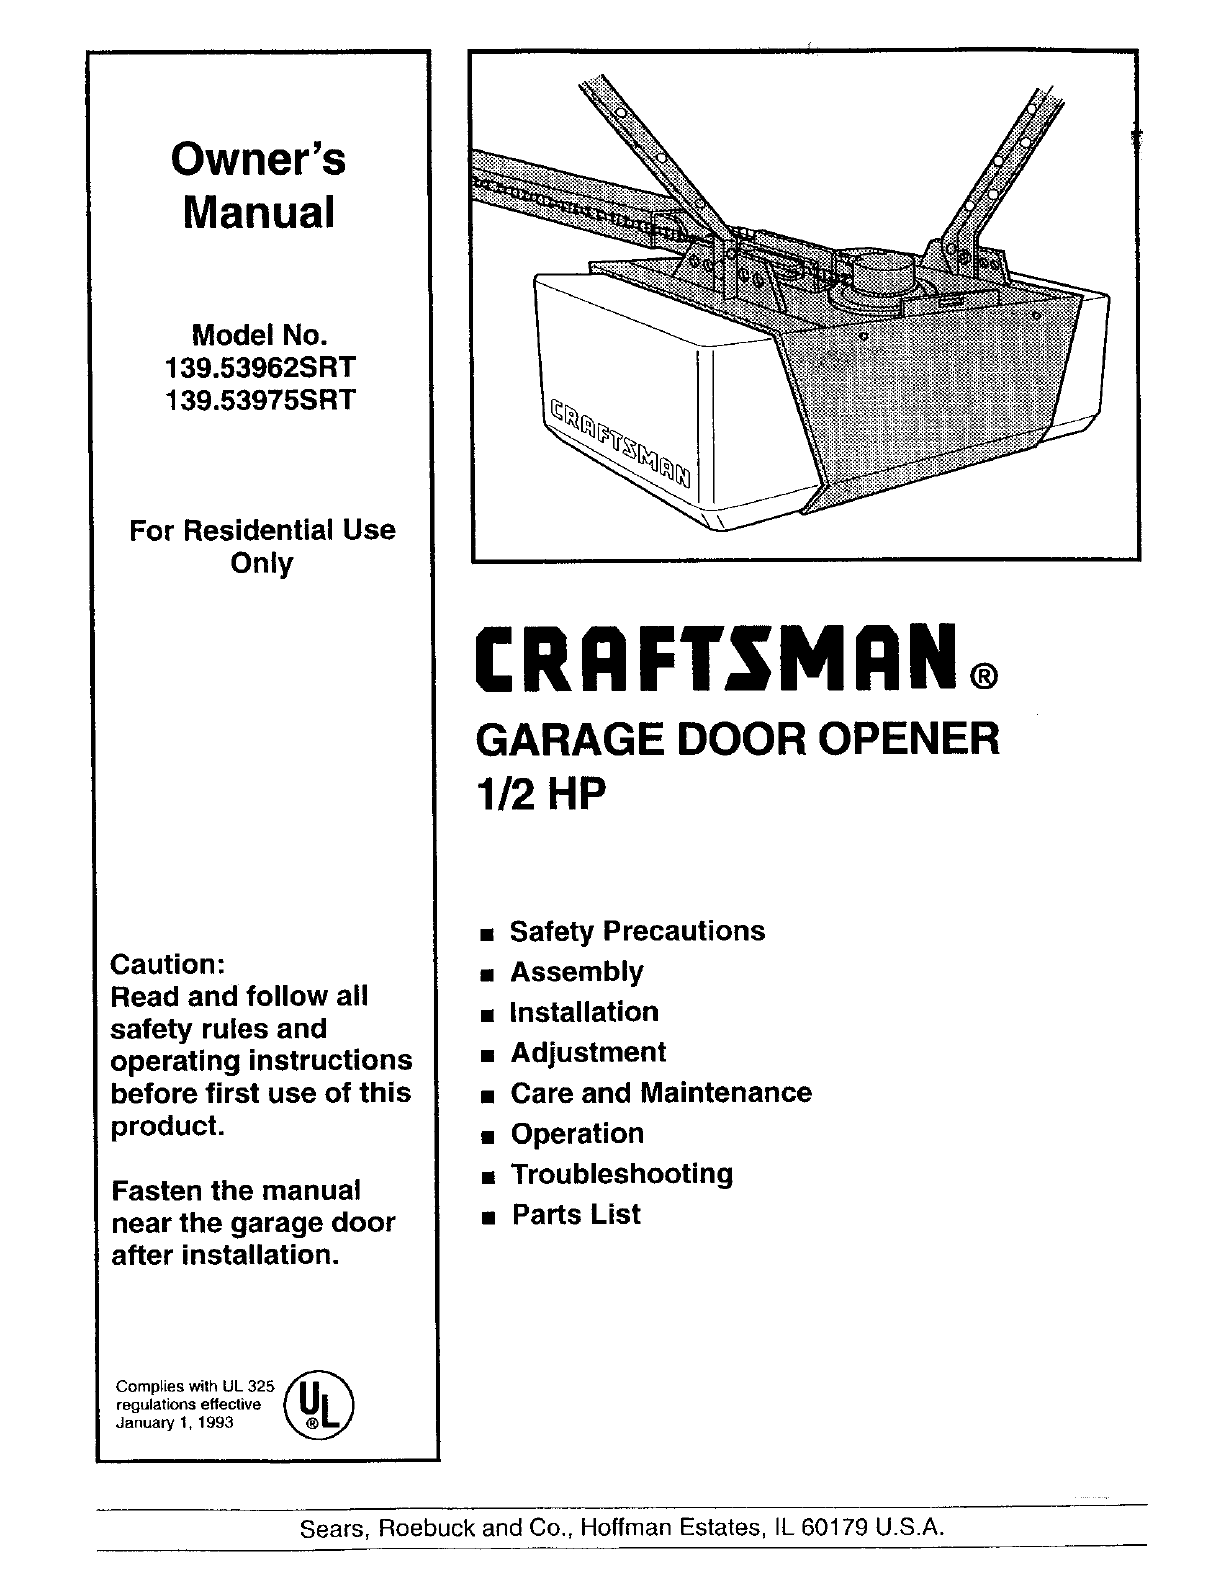 Craftsman 13953962srt User Manual Garage Door Opener Manuals And Guides L0310295